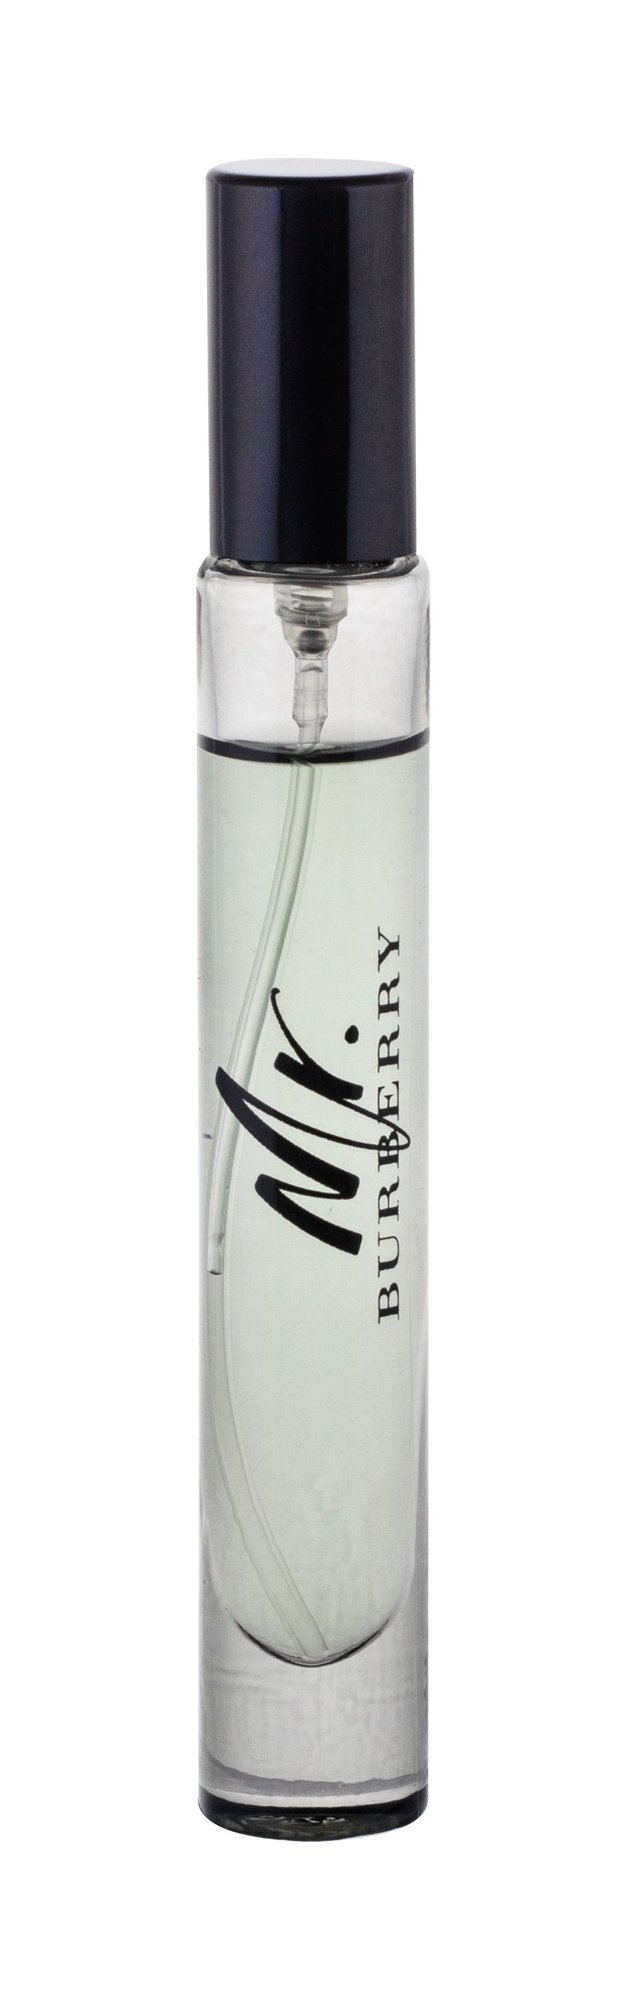 Burberry Mr. Burberry Eau de Toilette 7,5ml